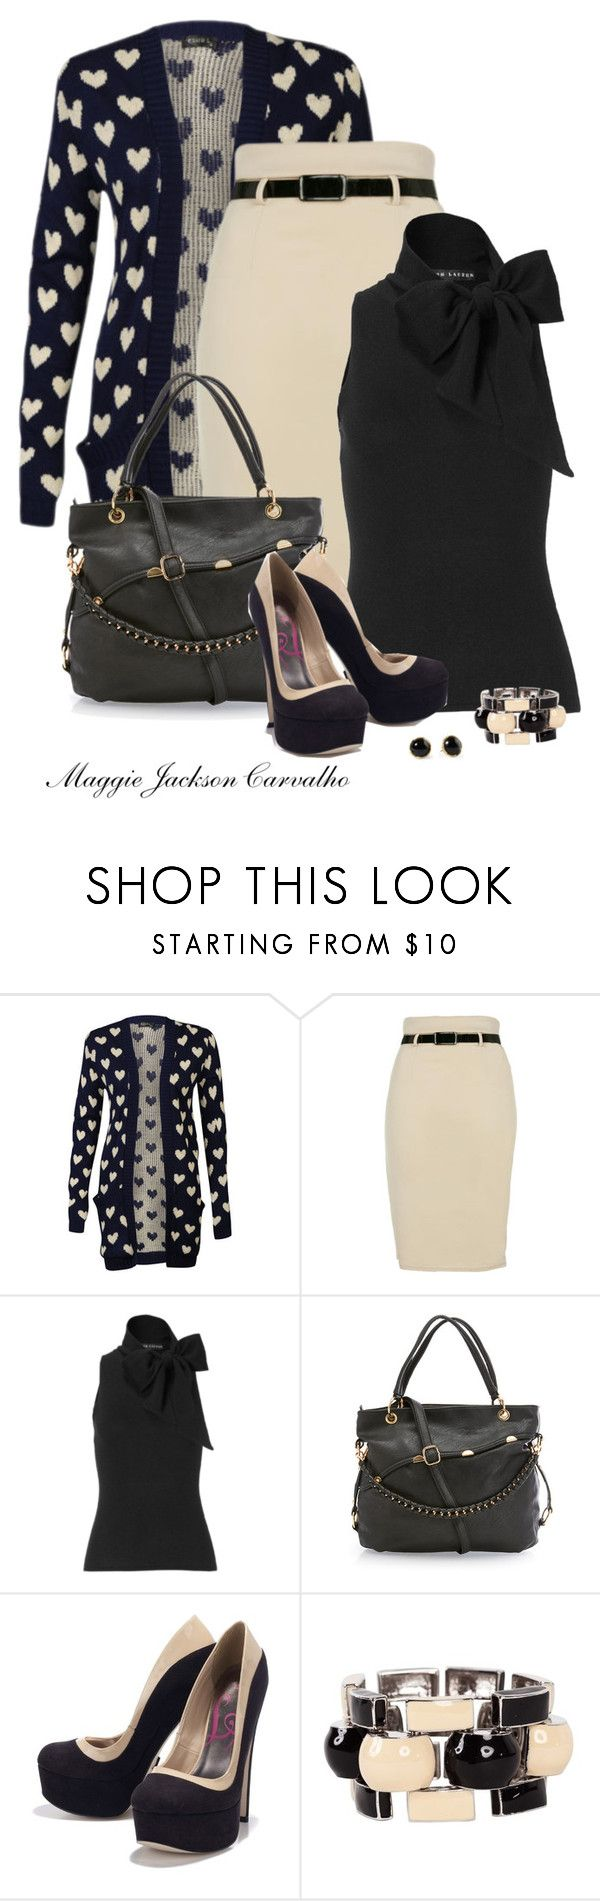 """""""Heart Cardigan"""" by maggie-jackson-carvalho ❤ liked on Polyvore featuring Club L, Ralph Lauren, Lipsy, J.W. Anderson and Pim + Larkin"""